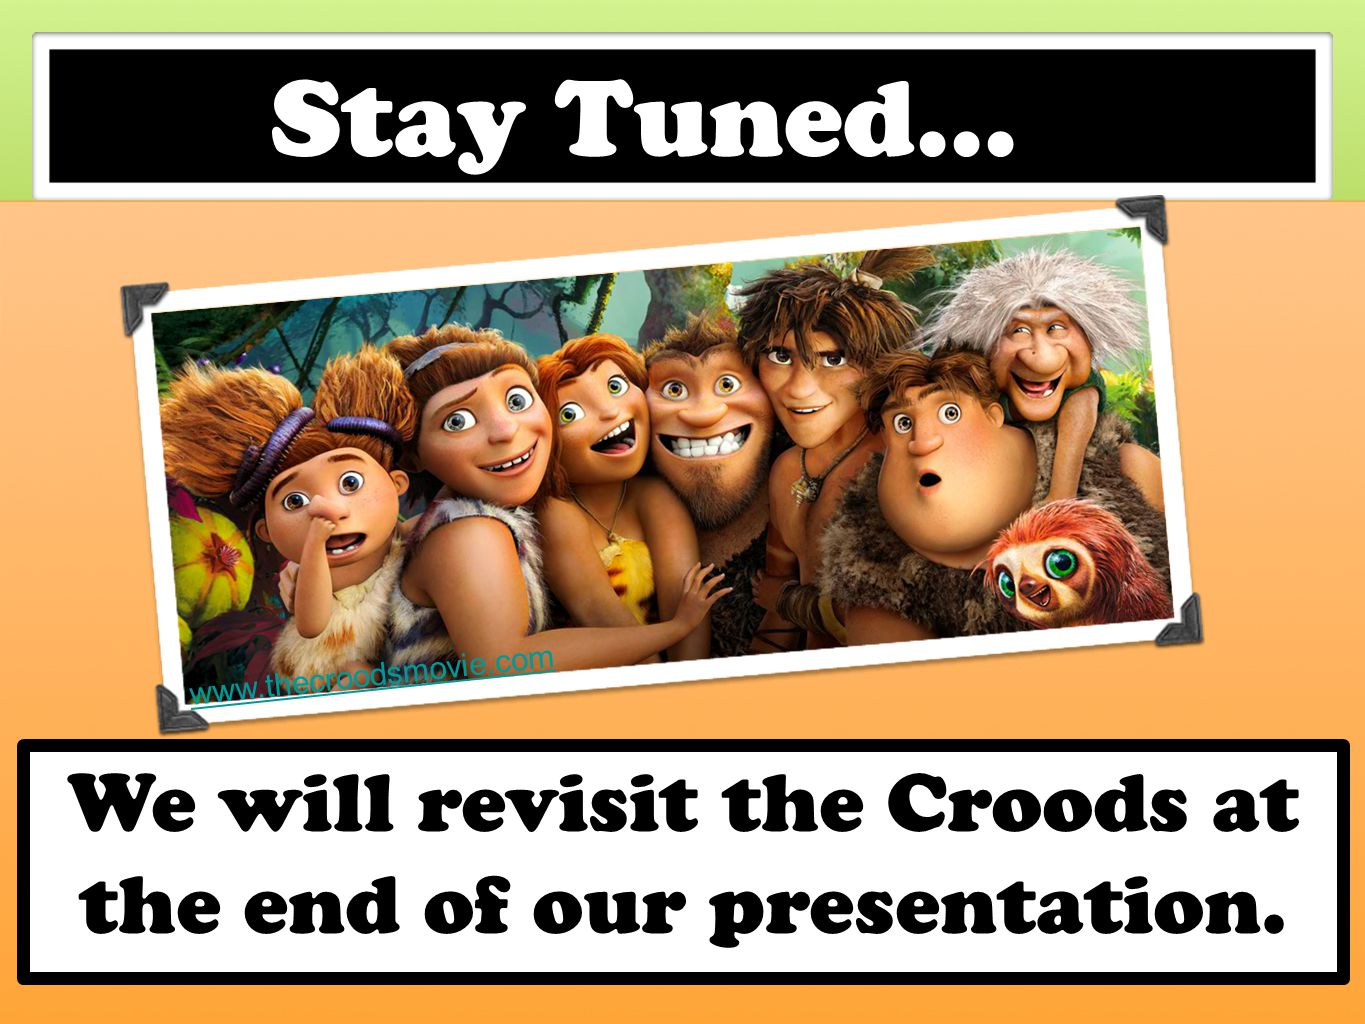 We will revisit the Croods at the end of our presentation.